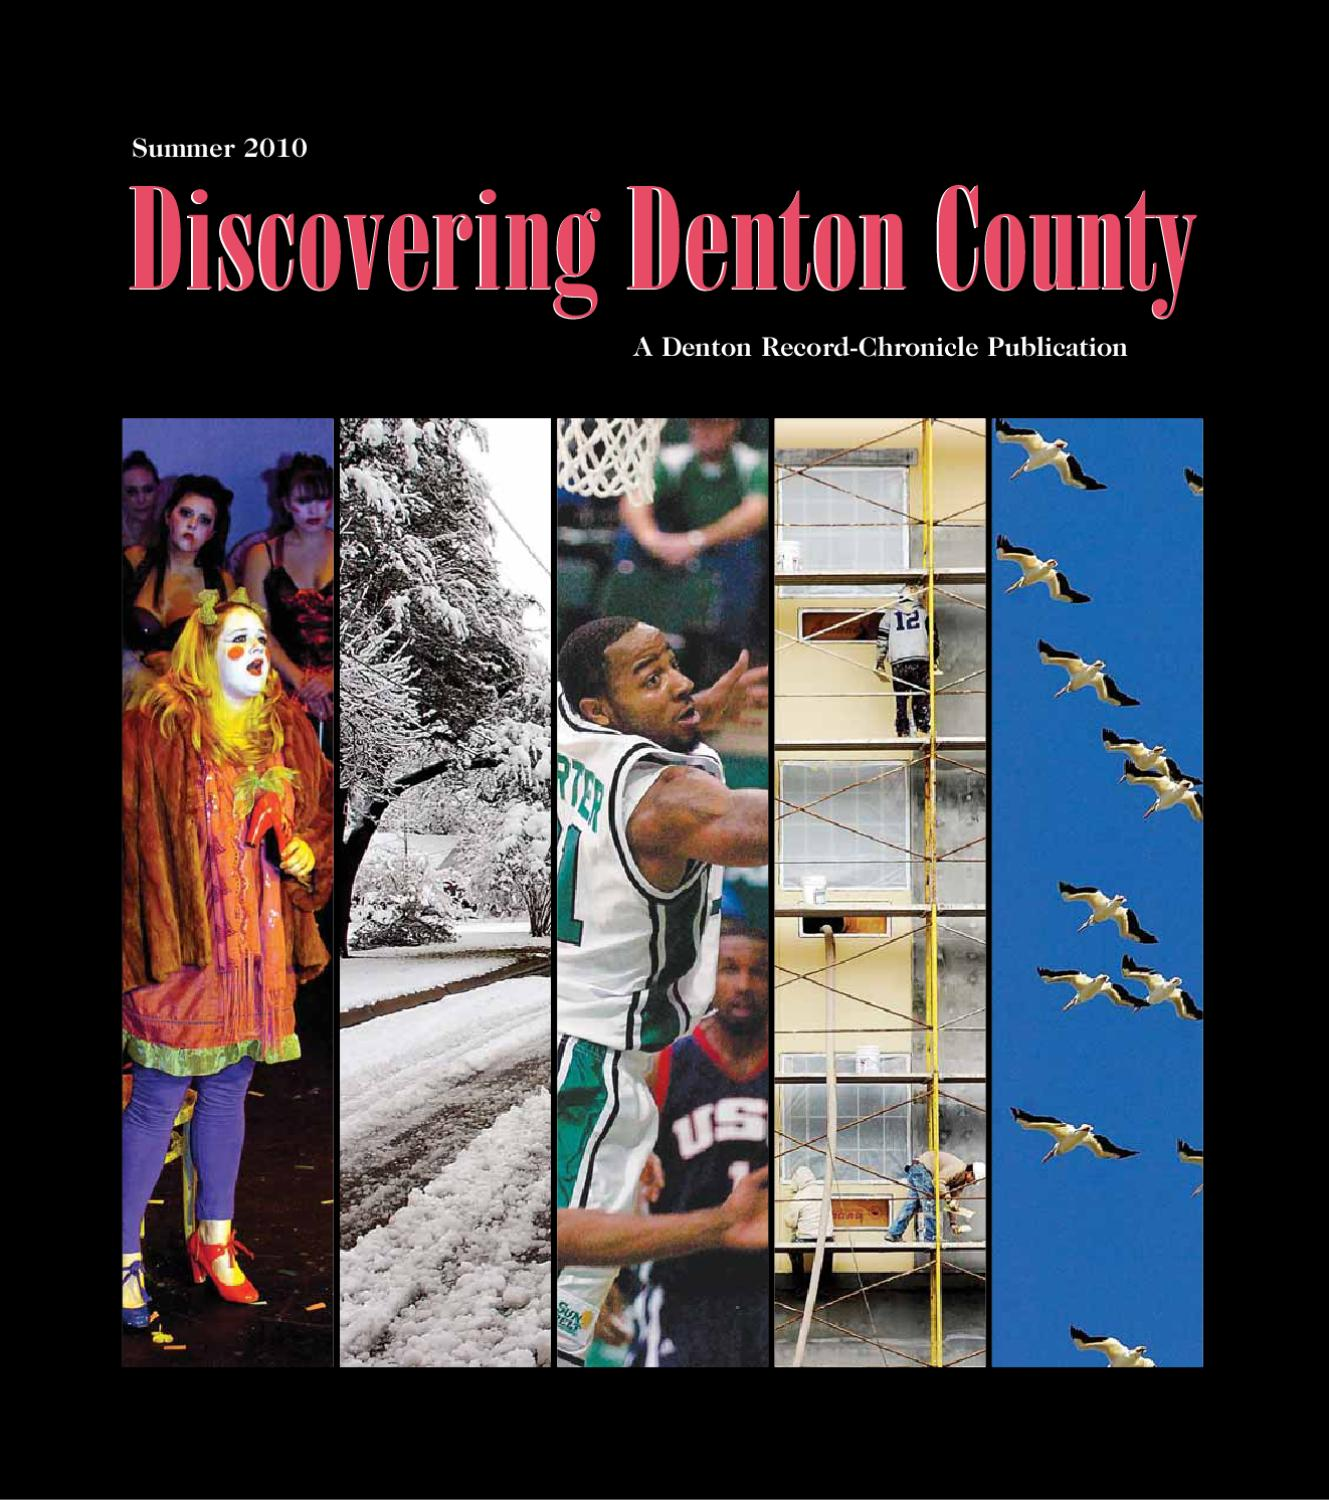 Discovering Denton County 2010 by Larry McBride issuu